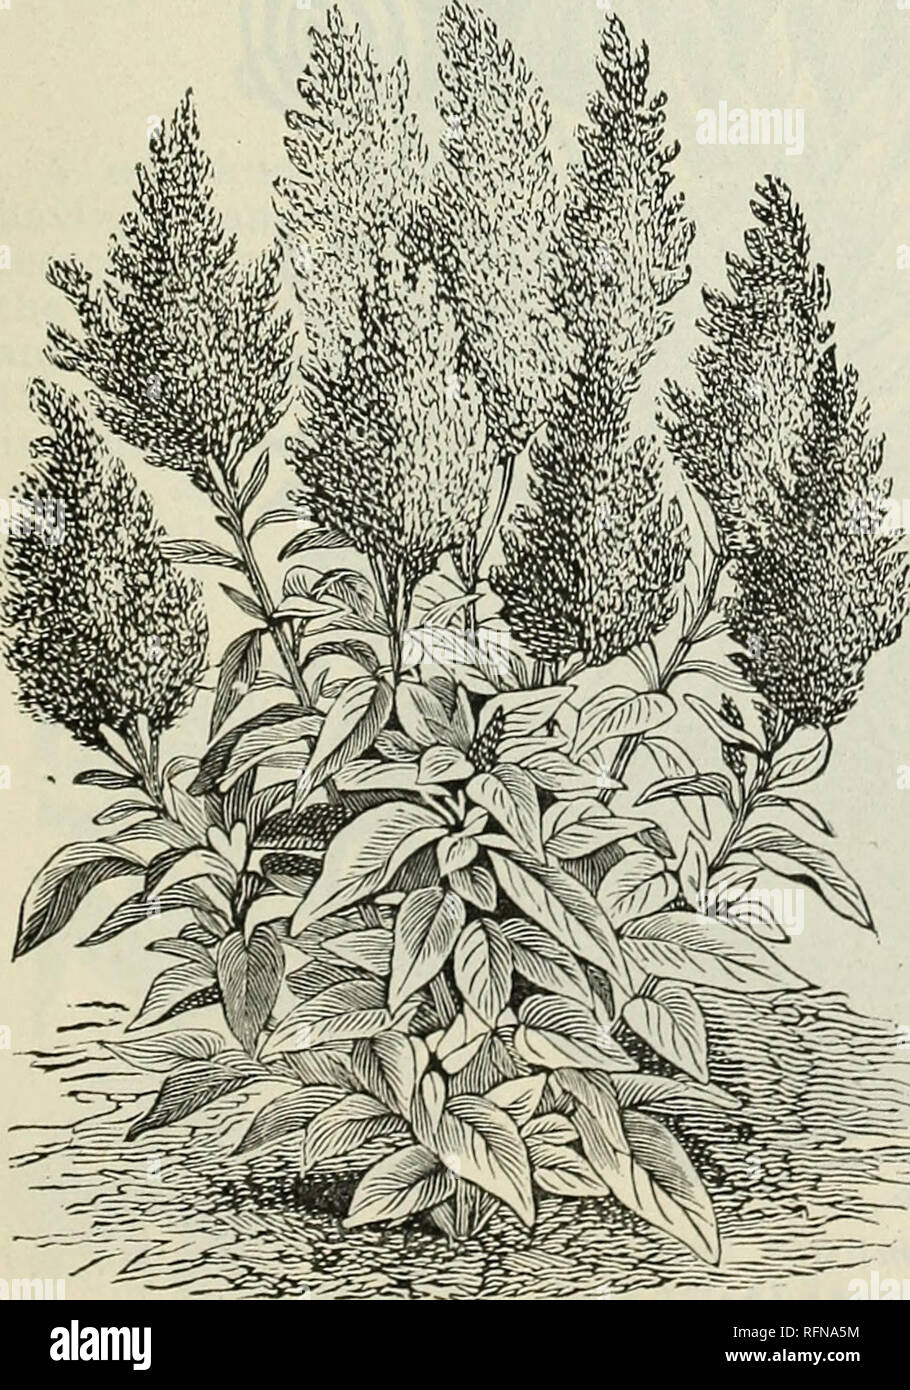 """. Annual descriptive catalogue : seeds. Vegetables Seeds Catalogs; Flowers Seeds Catalogs; Plants, Ornamental Catalogs; Gardening Equipment and supplies Catalogs; Commercial catalogs Connecticut New Haven. Carnation Marguerite. CASTOR OIL BEANS. (.s« /?«•«»«.) CELOSIA or COCKSCOMB.. Celosia Plumosa. A very desirable and showy plant, producing large combs of crimson or yellow flowers. The """" Plumosa """" sorts bear in the greatest profusion spikes of beautiful feather-like blossoms. The """" Cristata """" sorts are the well-known Cockscombs. CRISTATA, THE TRUE COCKSCOMB. Mixed. Includ - Stock Image"""